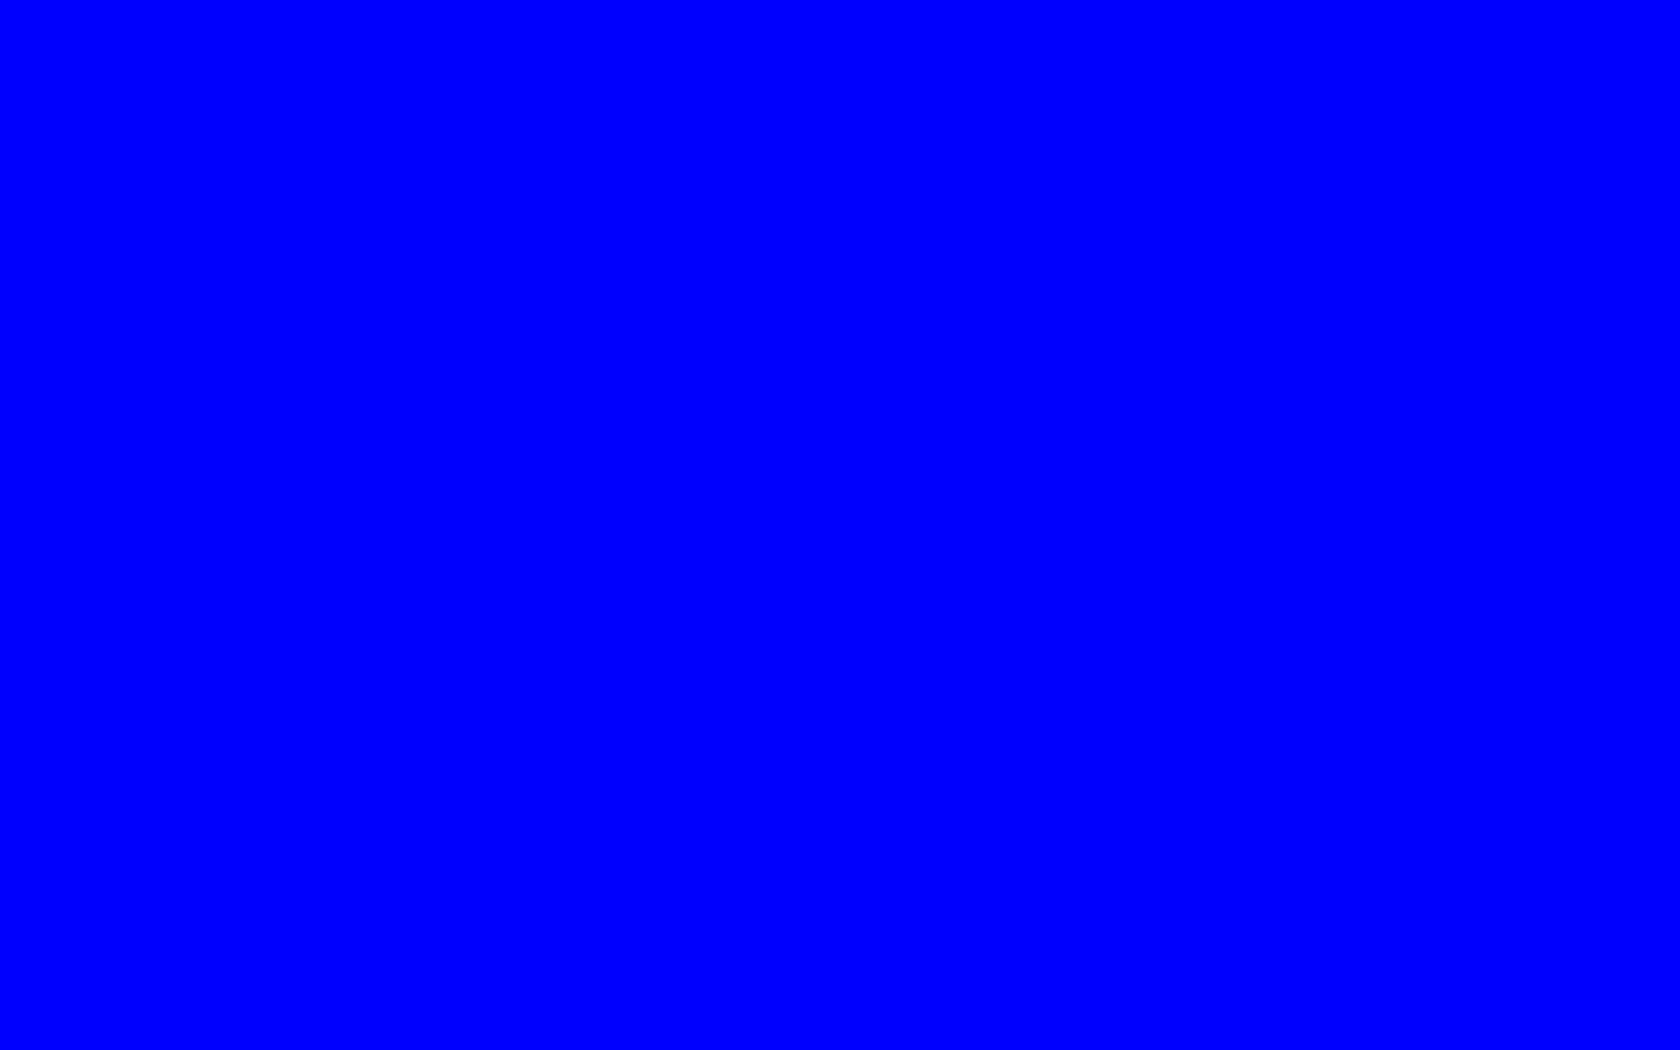 1680x1050 Blue Solid Color Background